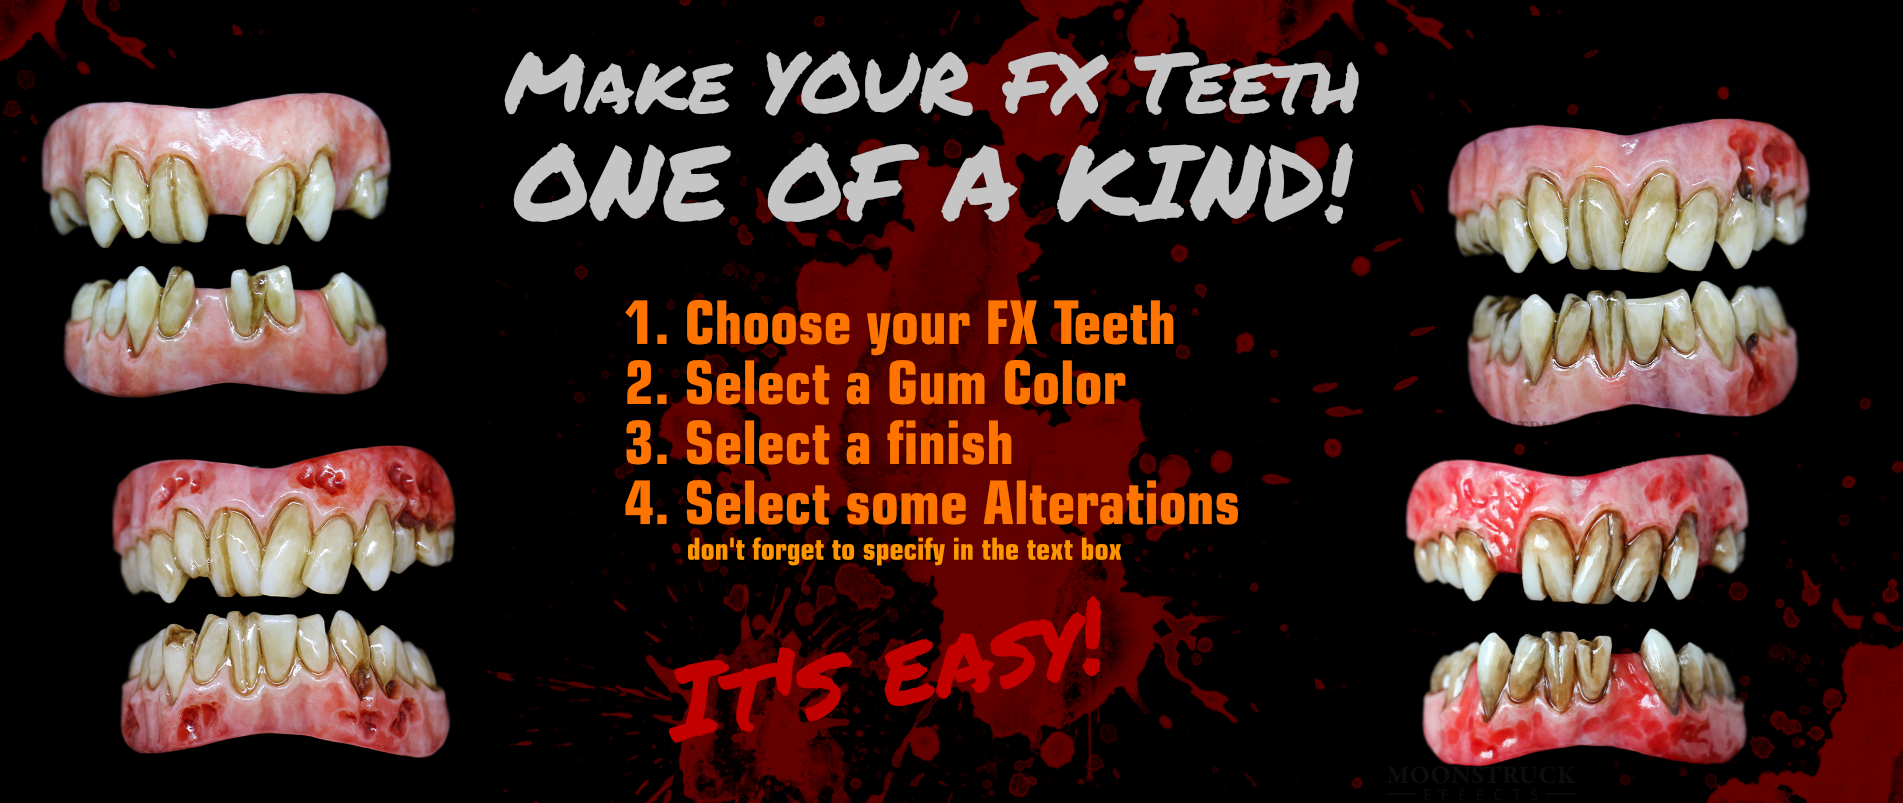 Make YOUR FX Teeth ONE OF A KIND